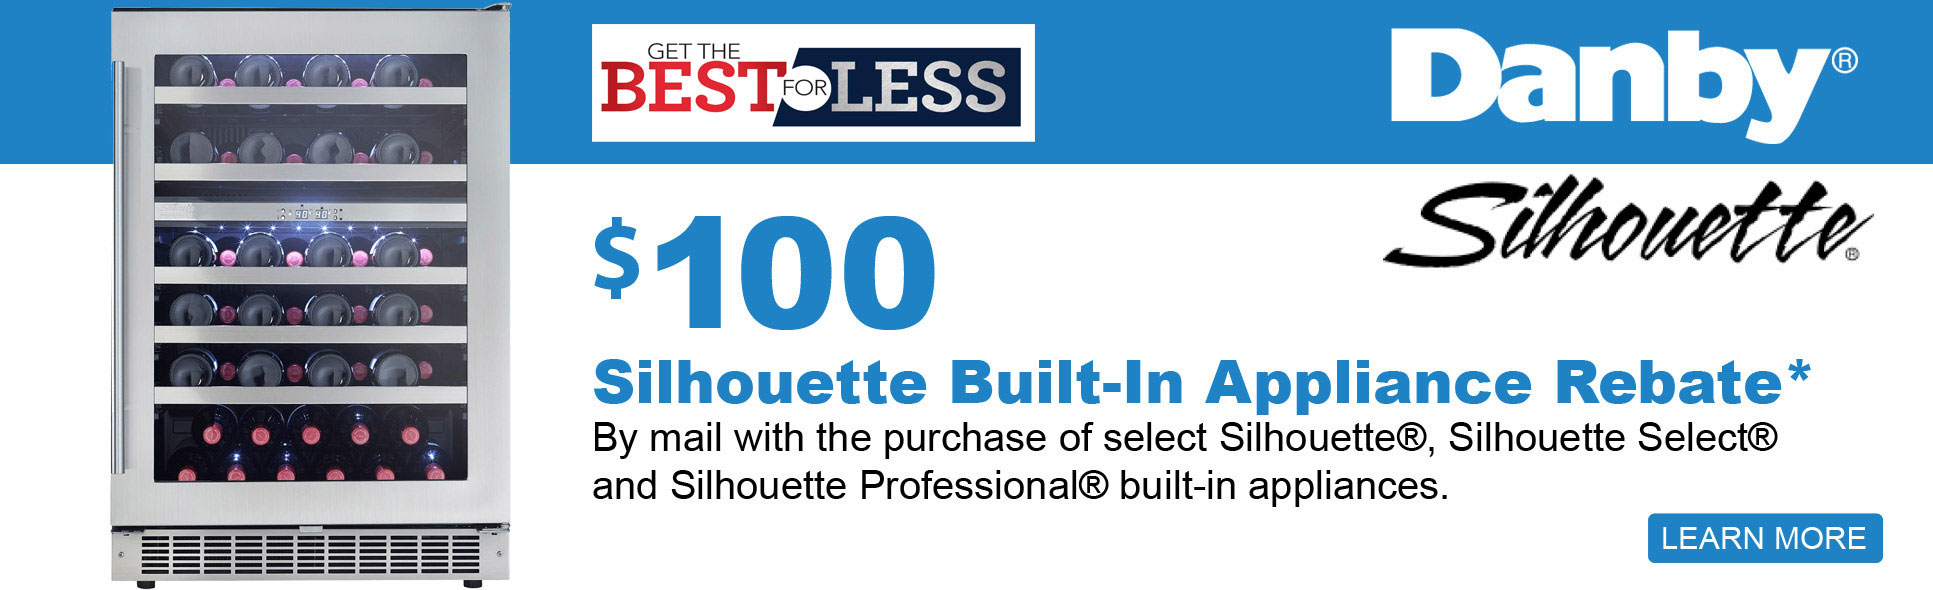 Save up to $100 with qualified purchase